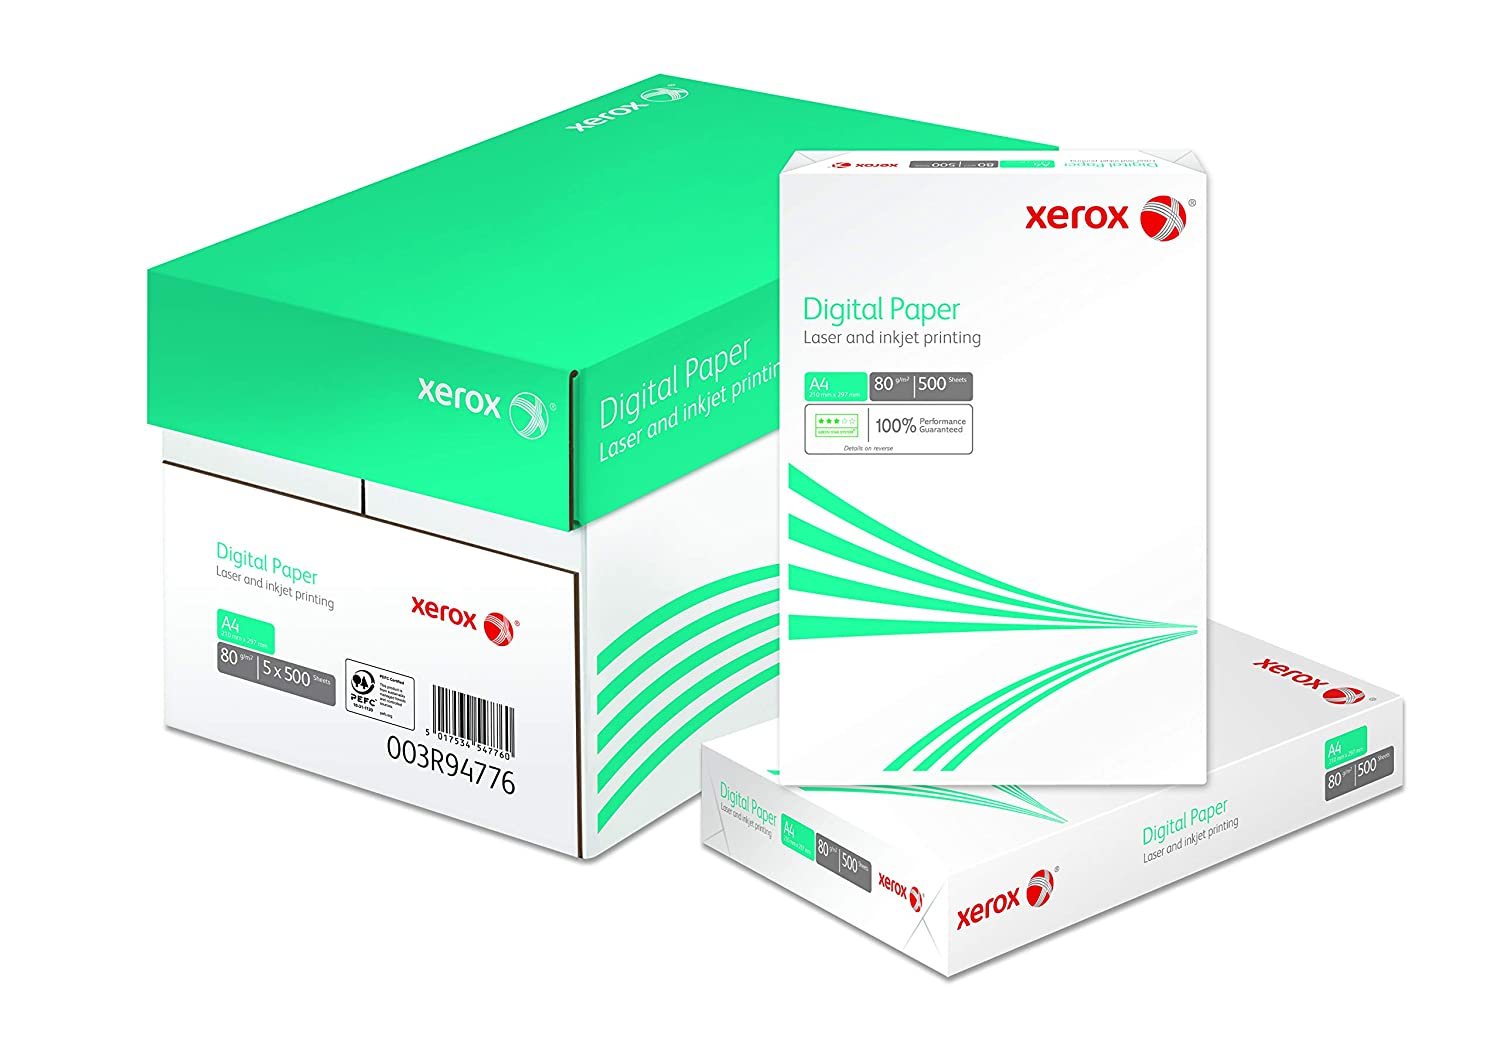 Xerox NCR Paper Digital Laser Carbonless 2-Part White and Yellow Ref 003R99105 [250 Sheets] 513677